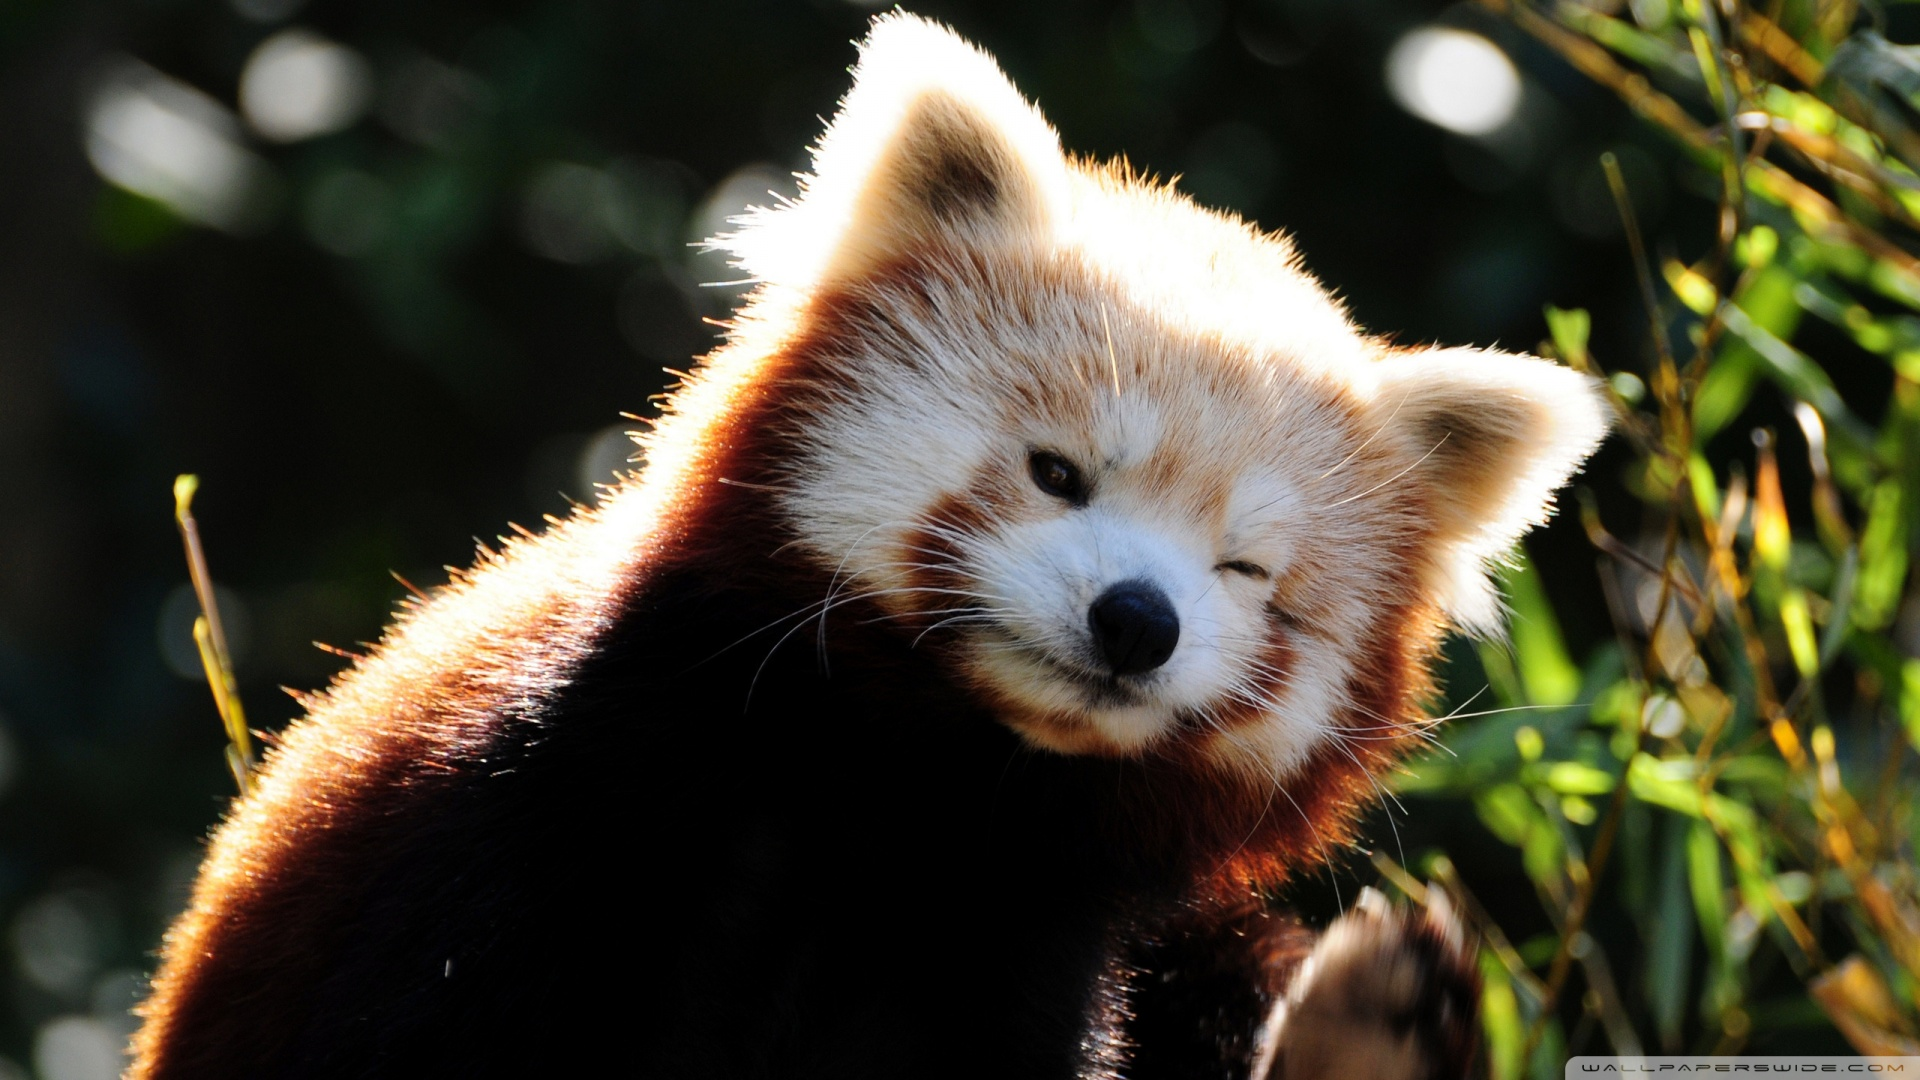 Adorable Red Panda Wallpaper